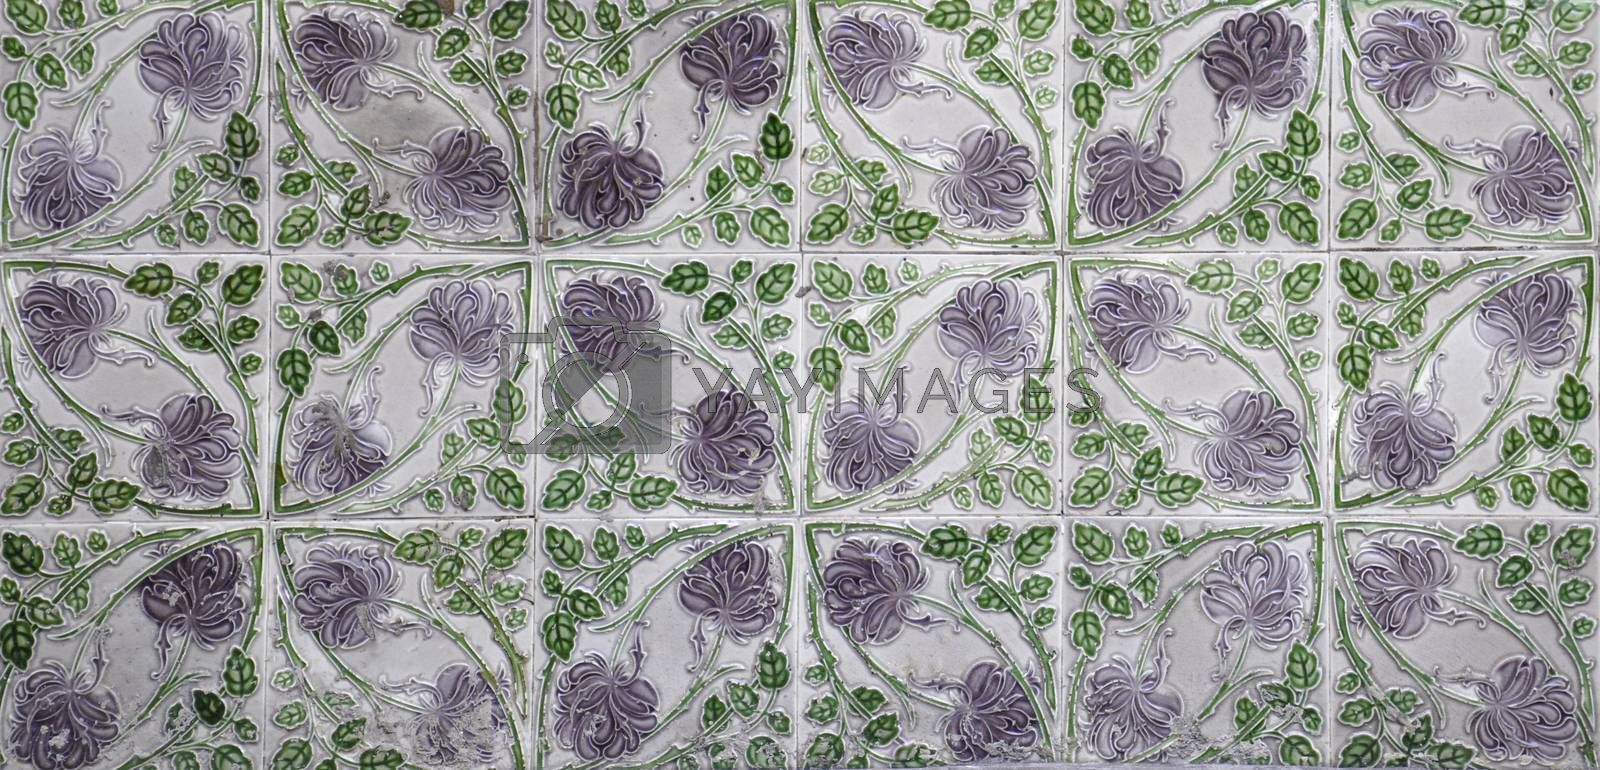 A mosaic of Green and lilac floral pernanakan tiles, as typically found on the frontage of traditional Chinese shop houses.